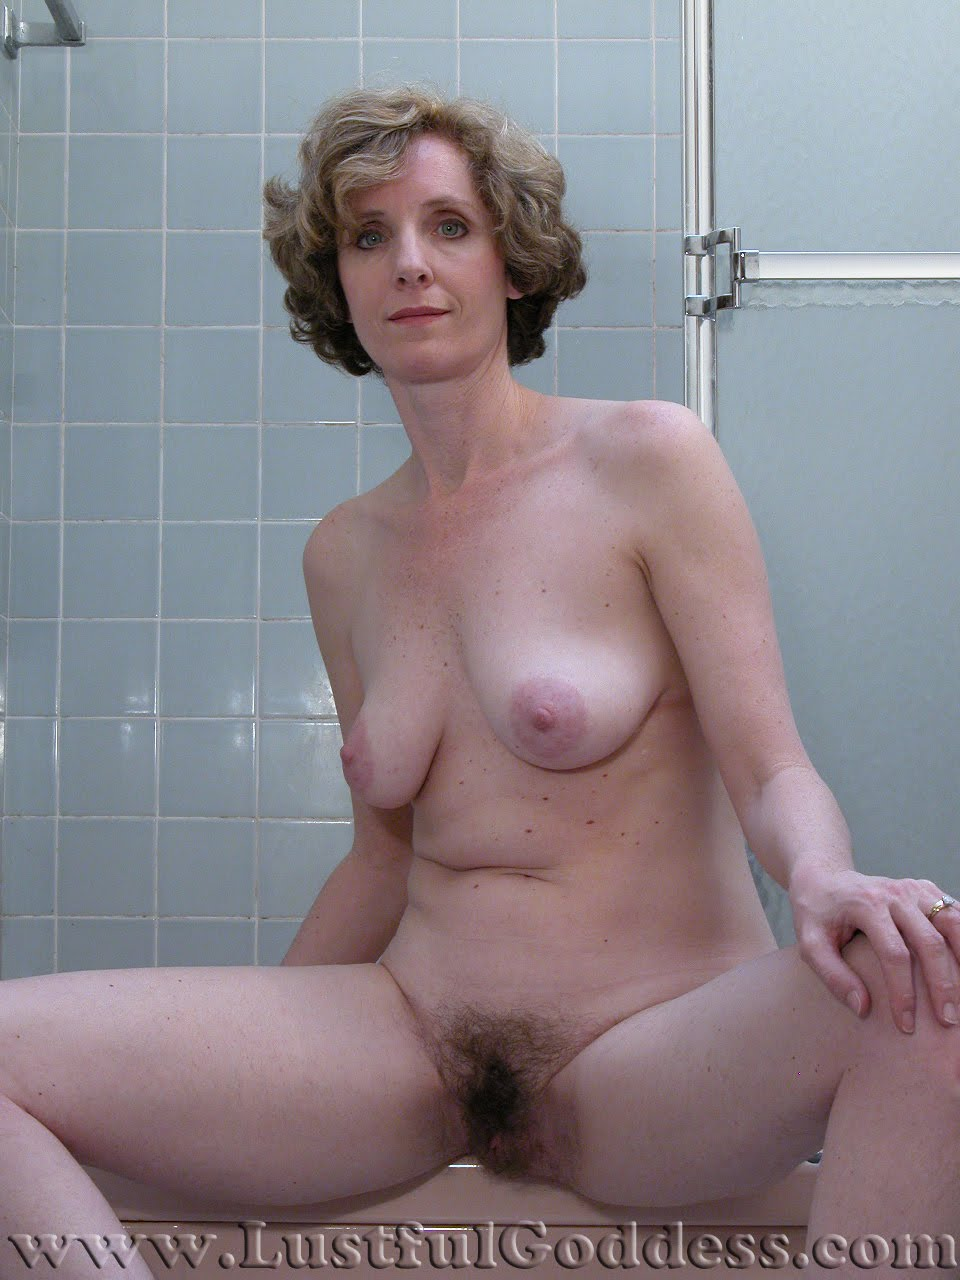 Casually come Vintage hairy nude mature women sorry, that